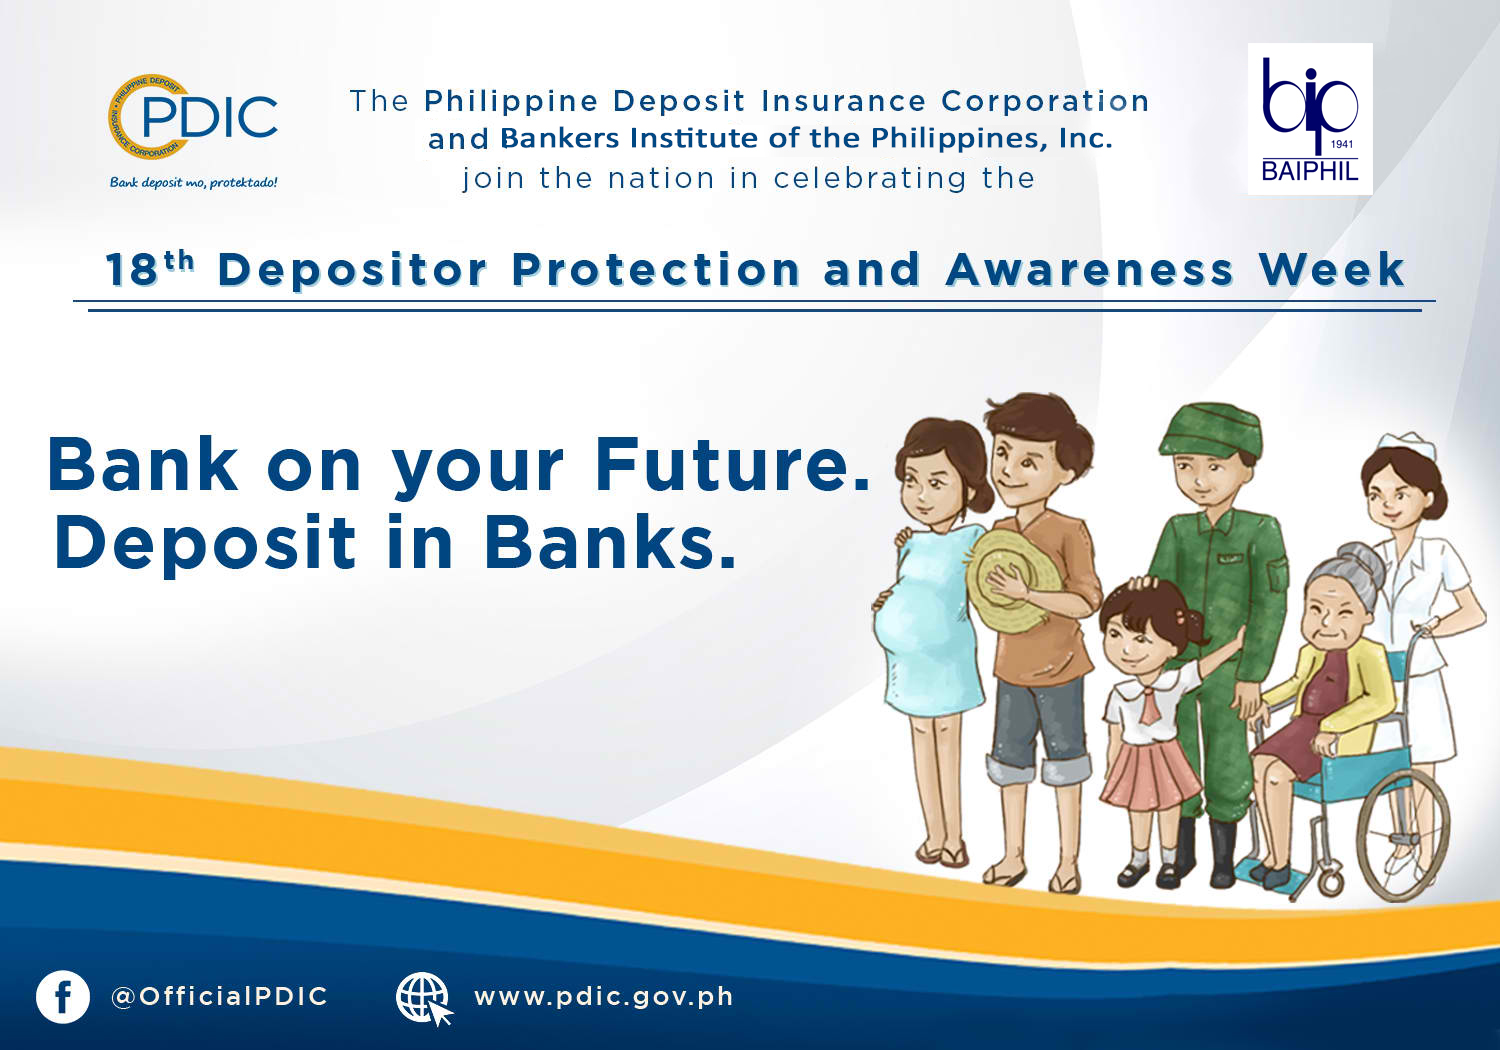 Observance of the 18th Depositor Protection and Awareness Week (June 16-22)